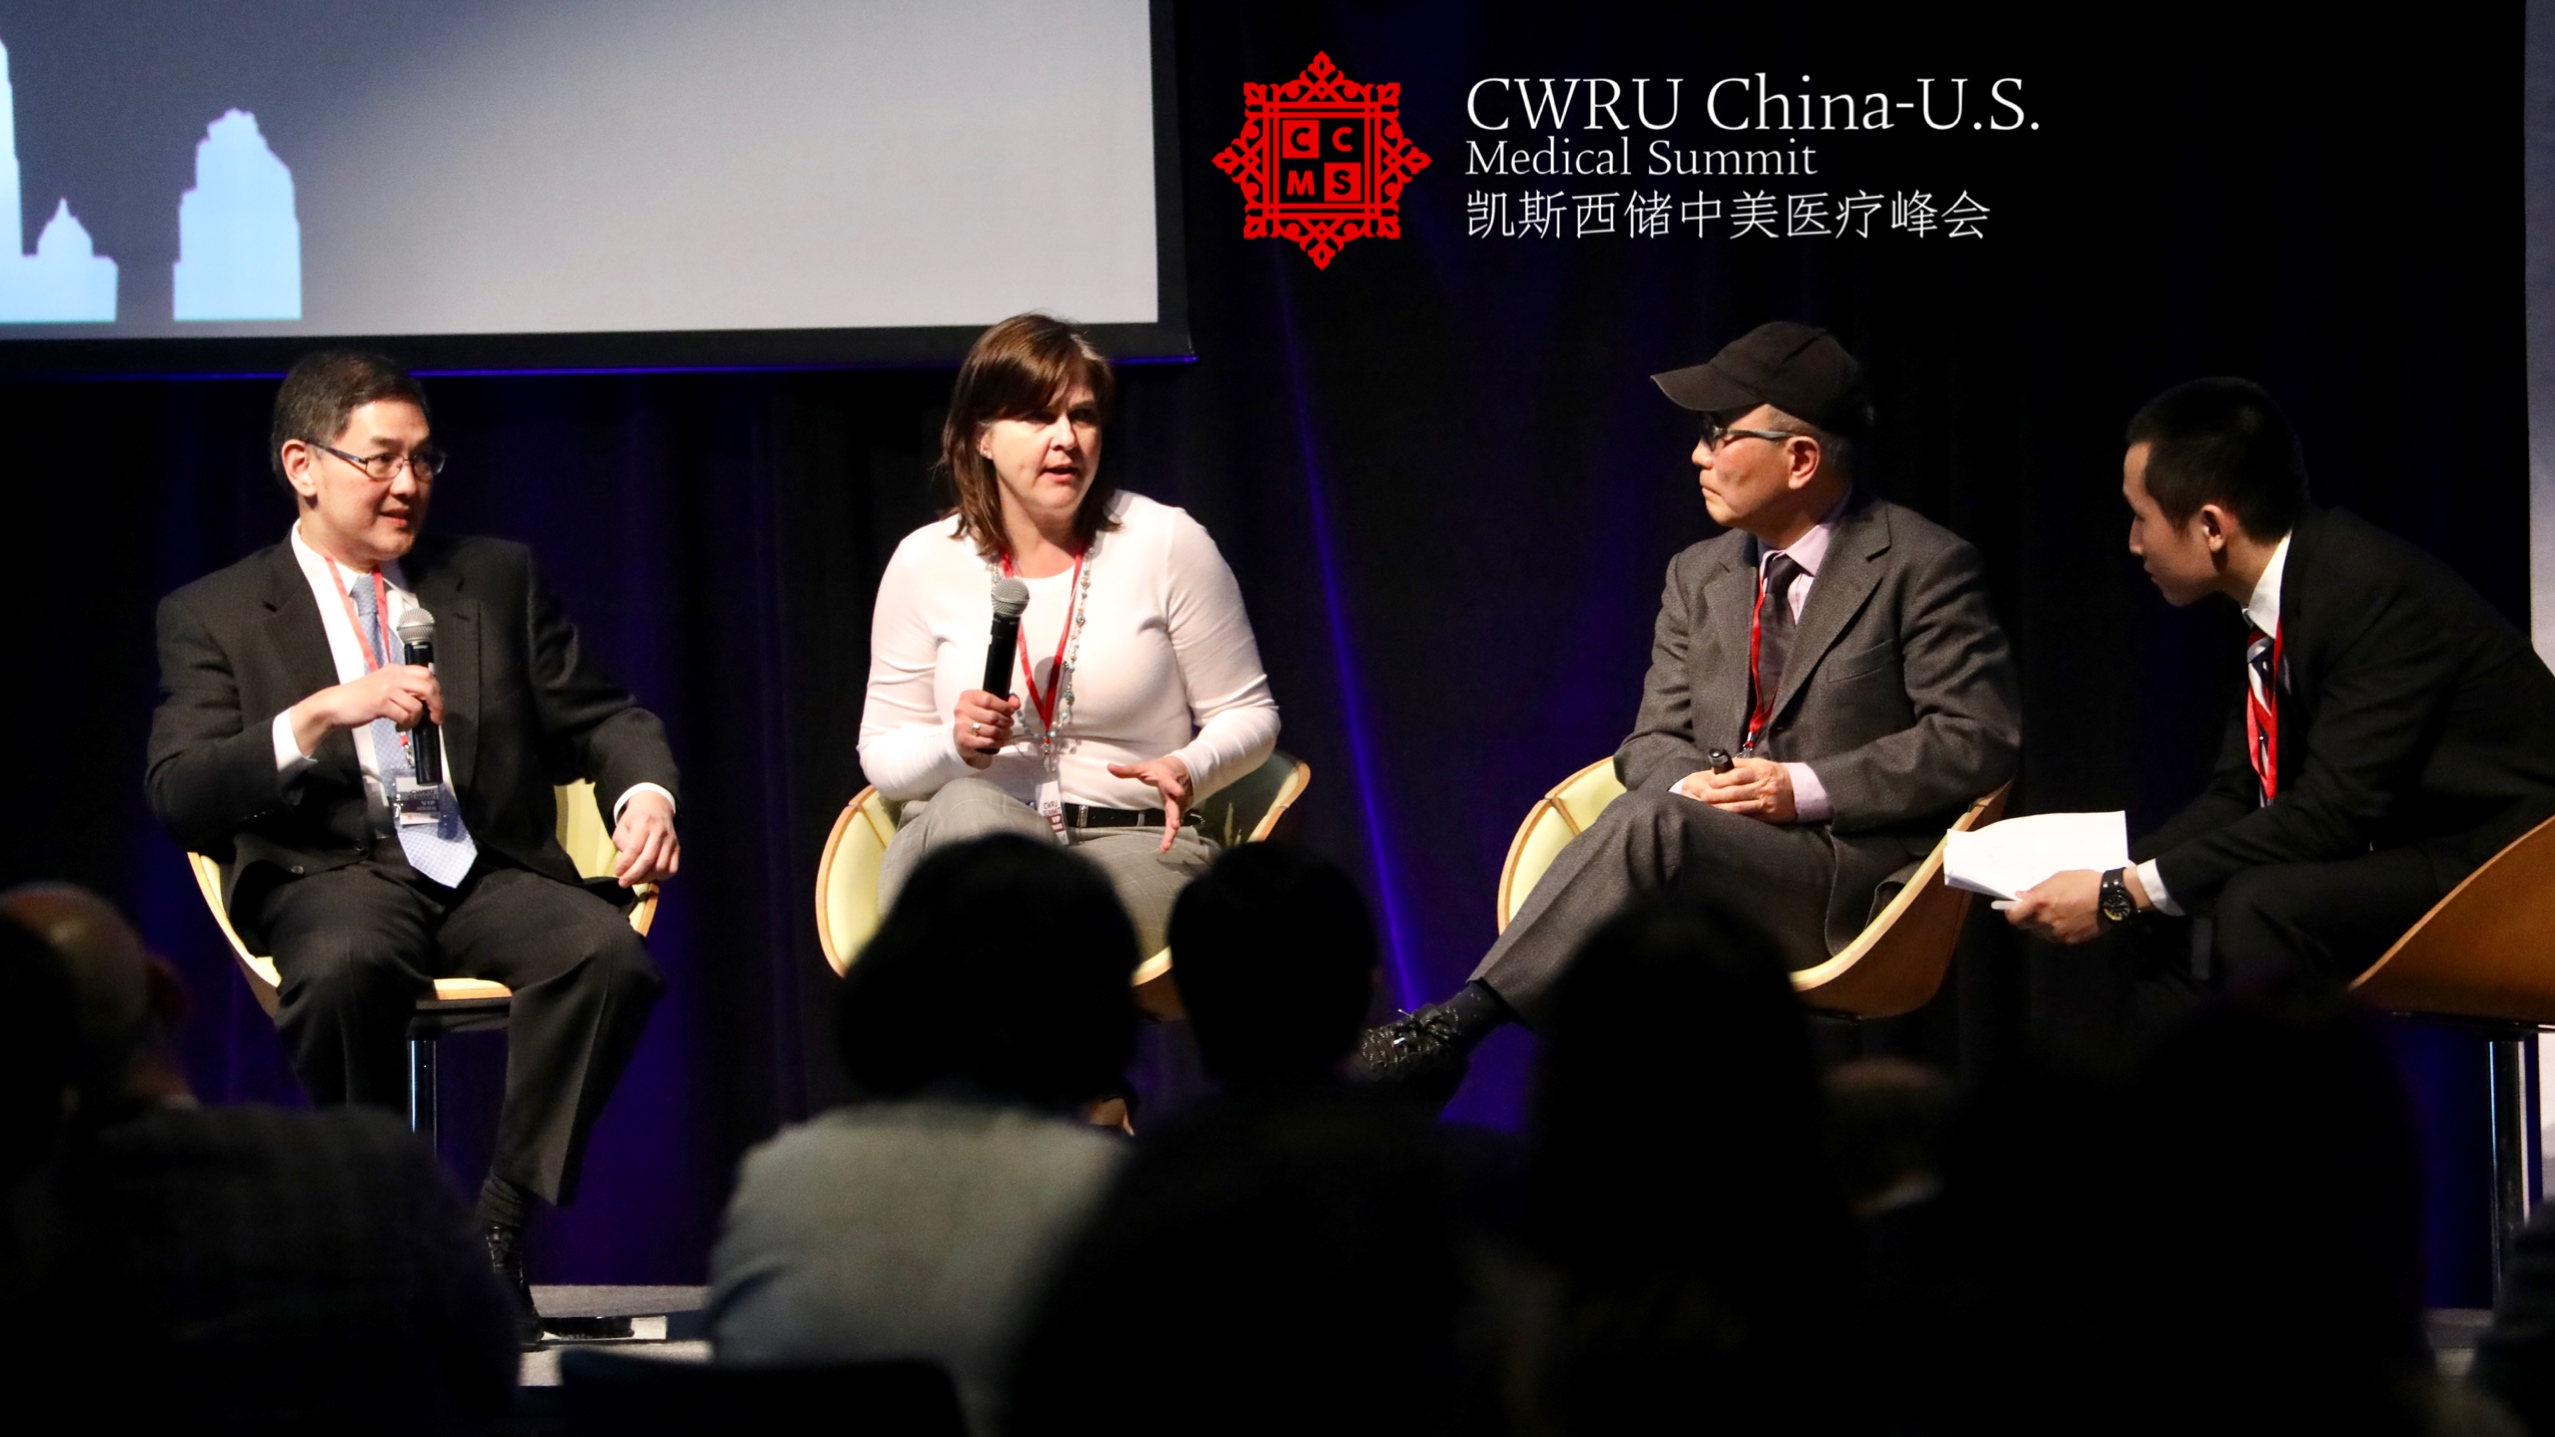 Professor Kathryn Lavelle participating in China-U.S. Summit